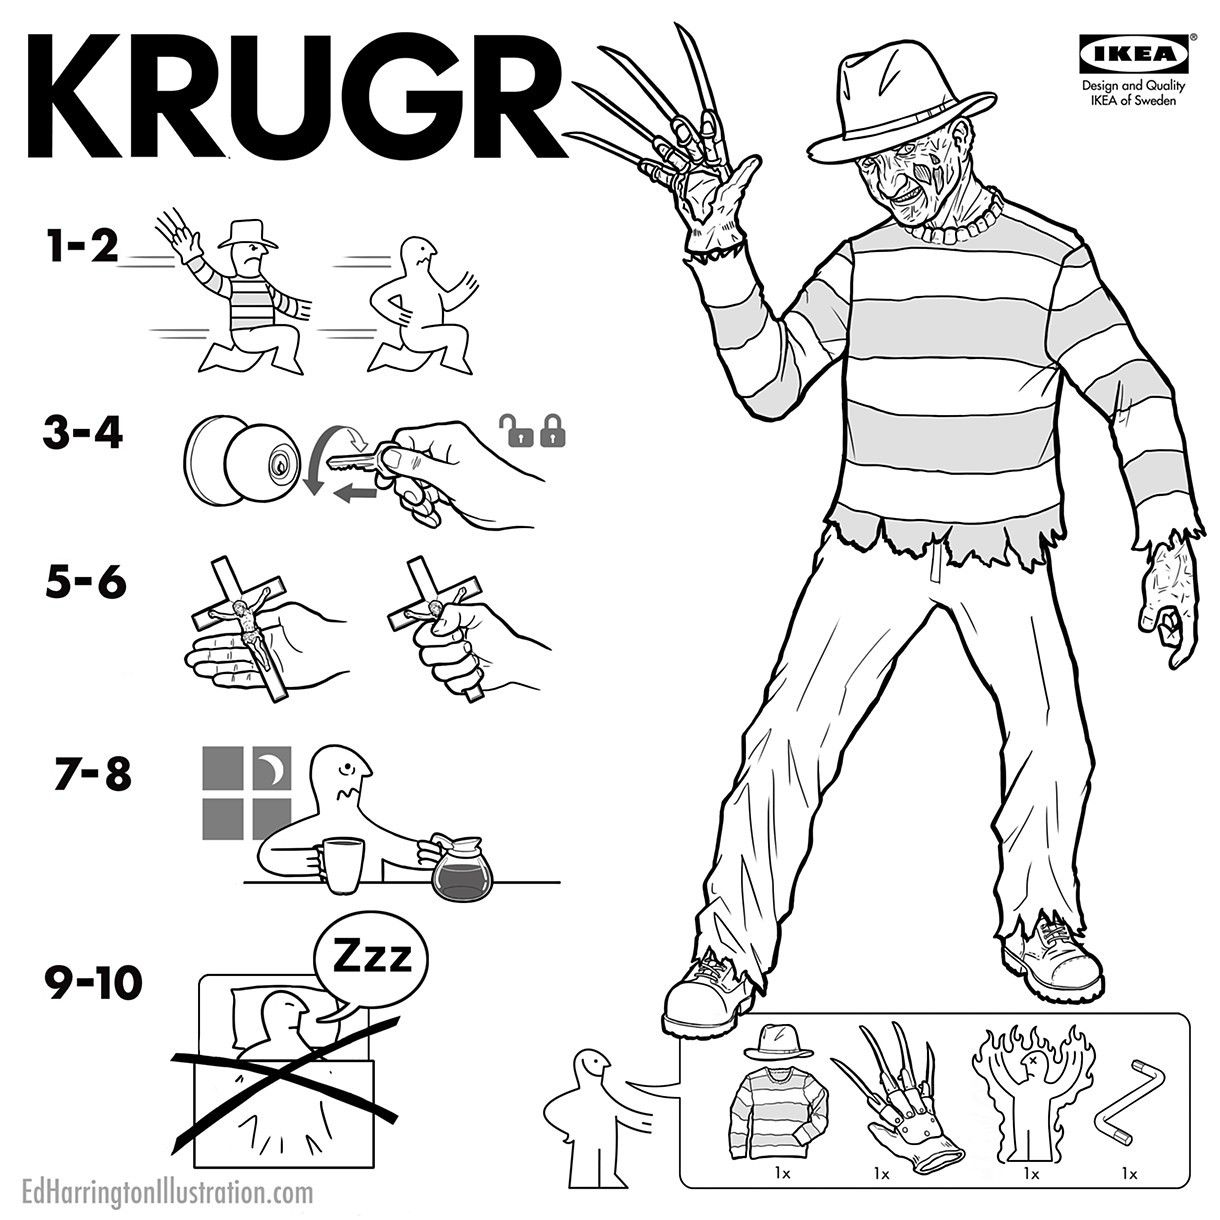 Krugr, an Ikea manual on Freddy Krueger (Nightmare on Elm Street)